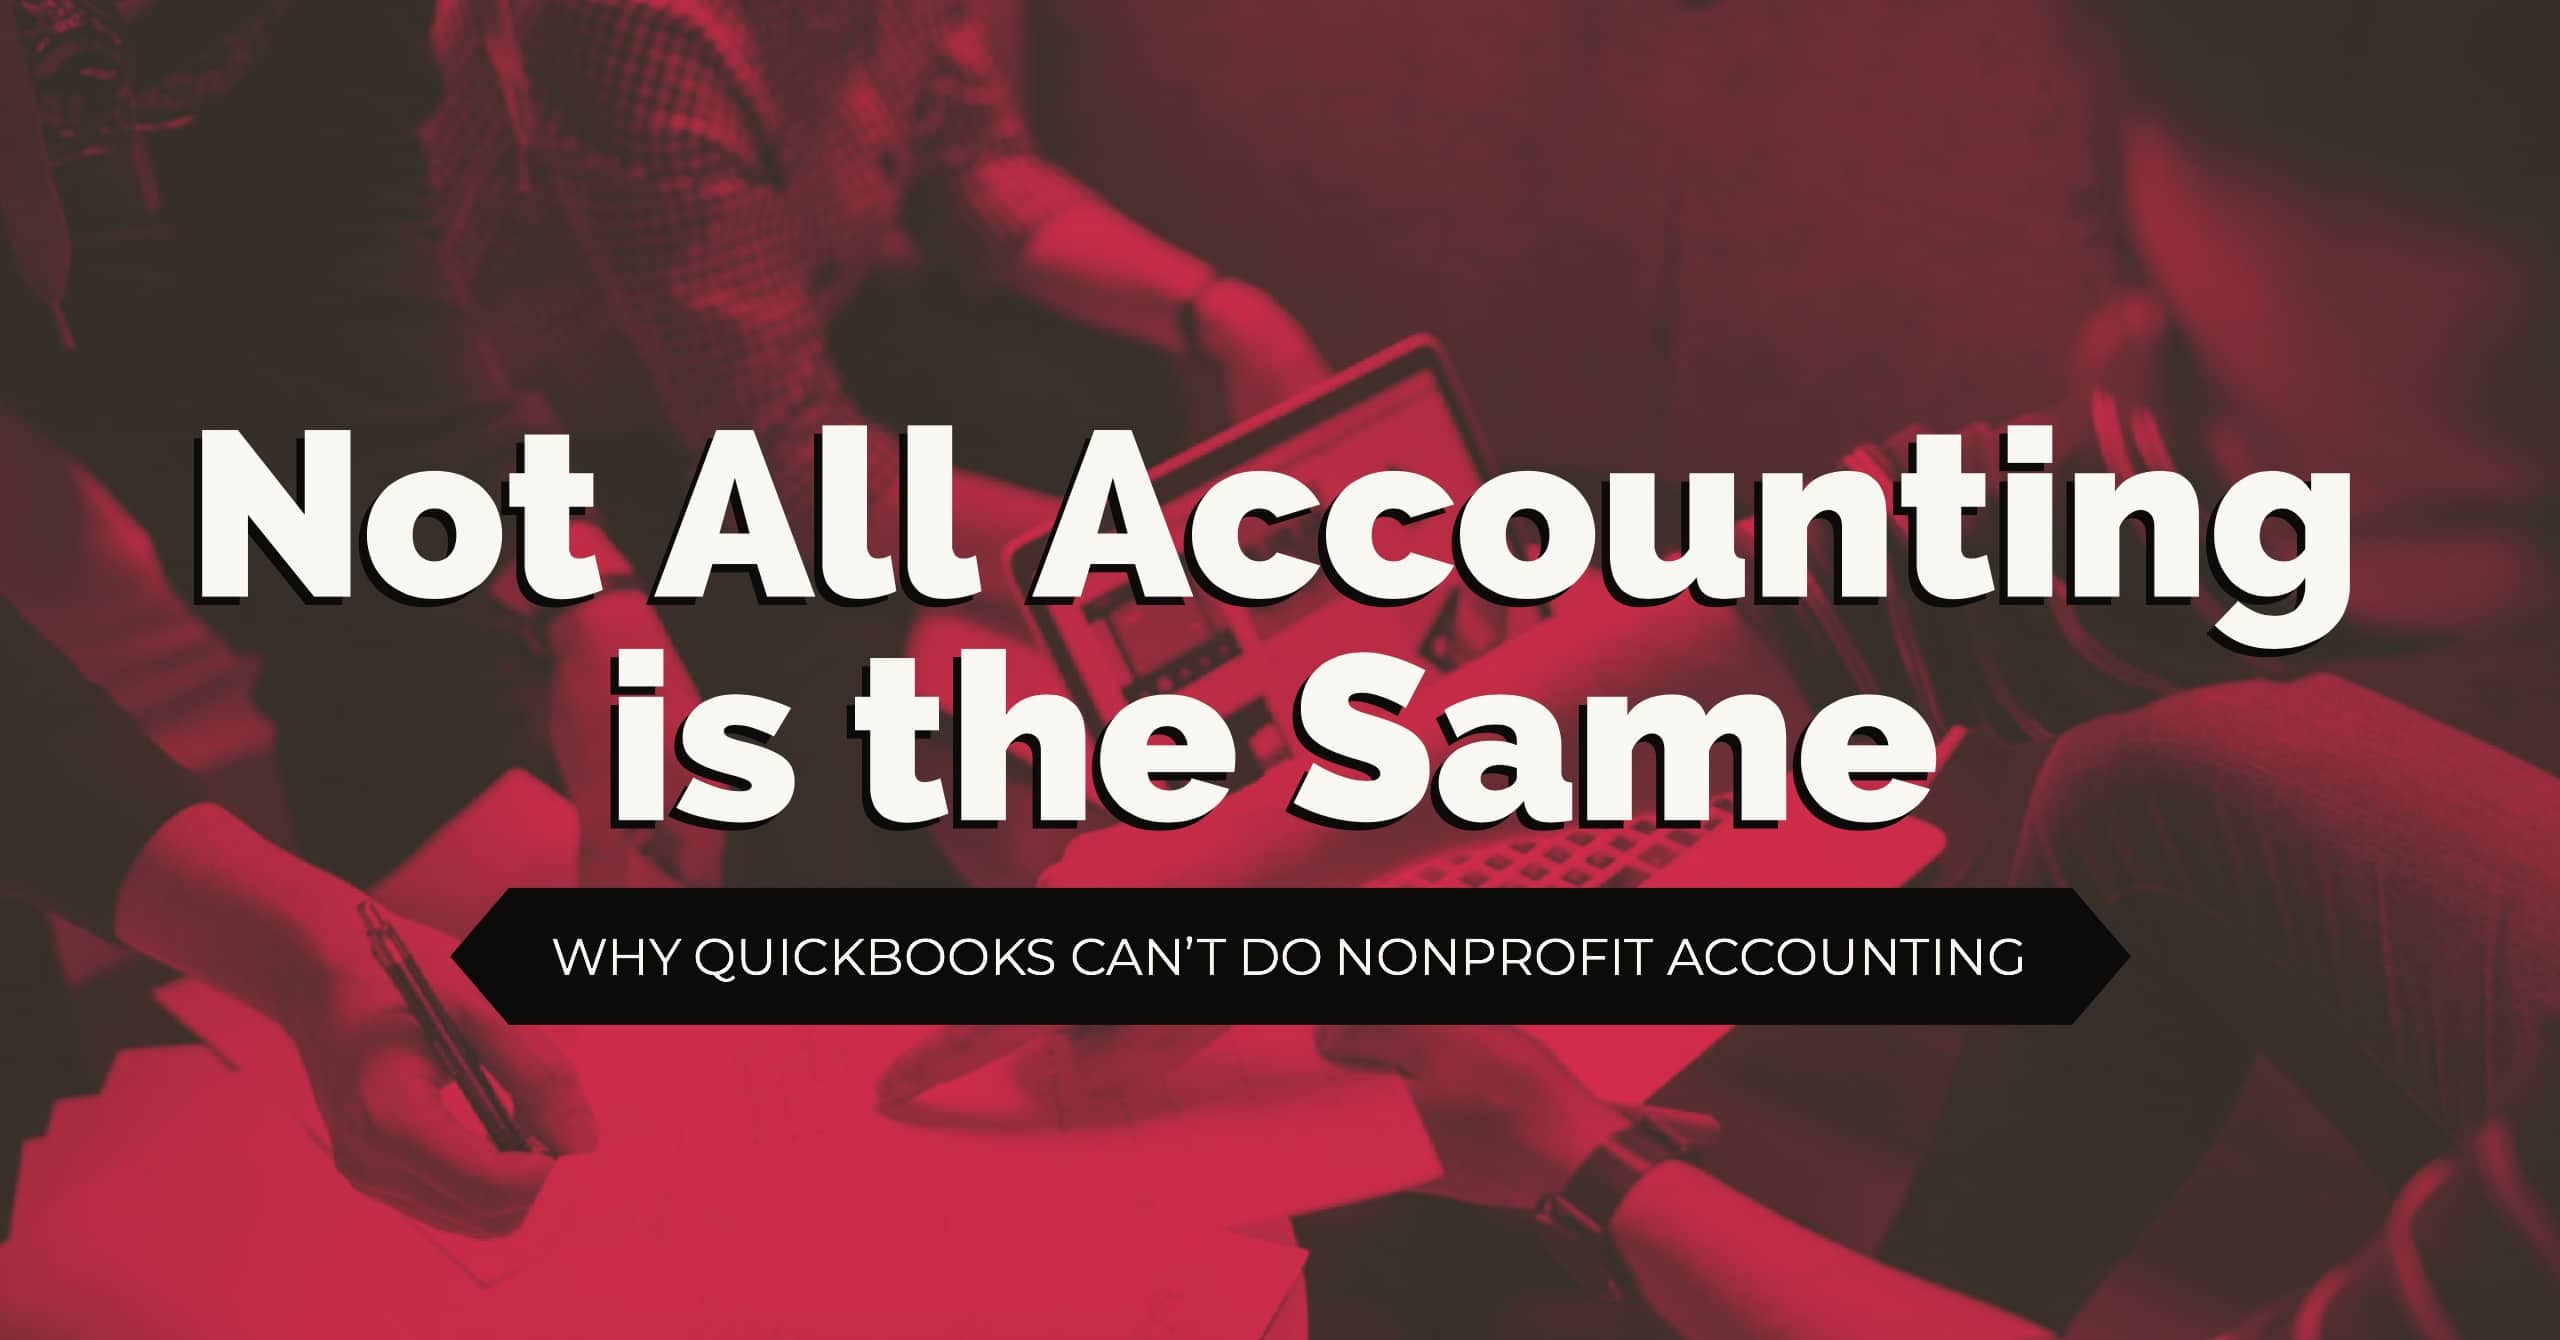 Why Quickbooks Does Not Follow Nonprofit Accounting Guidelines